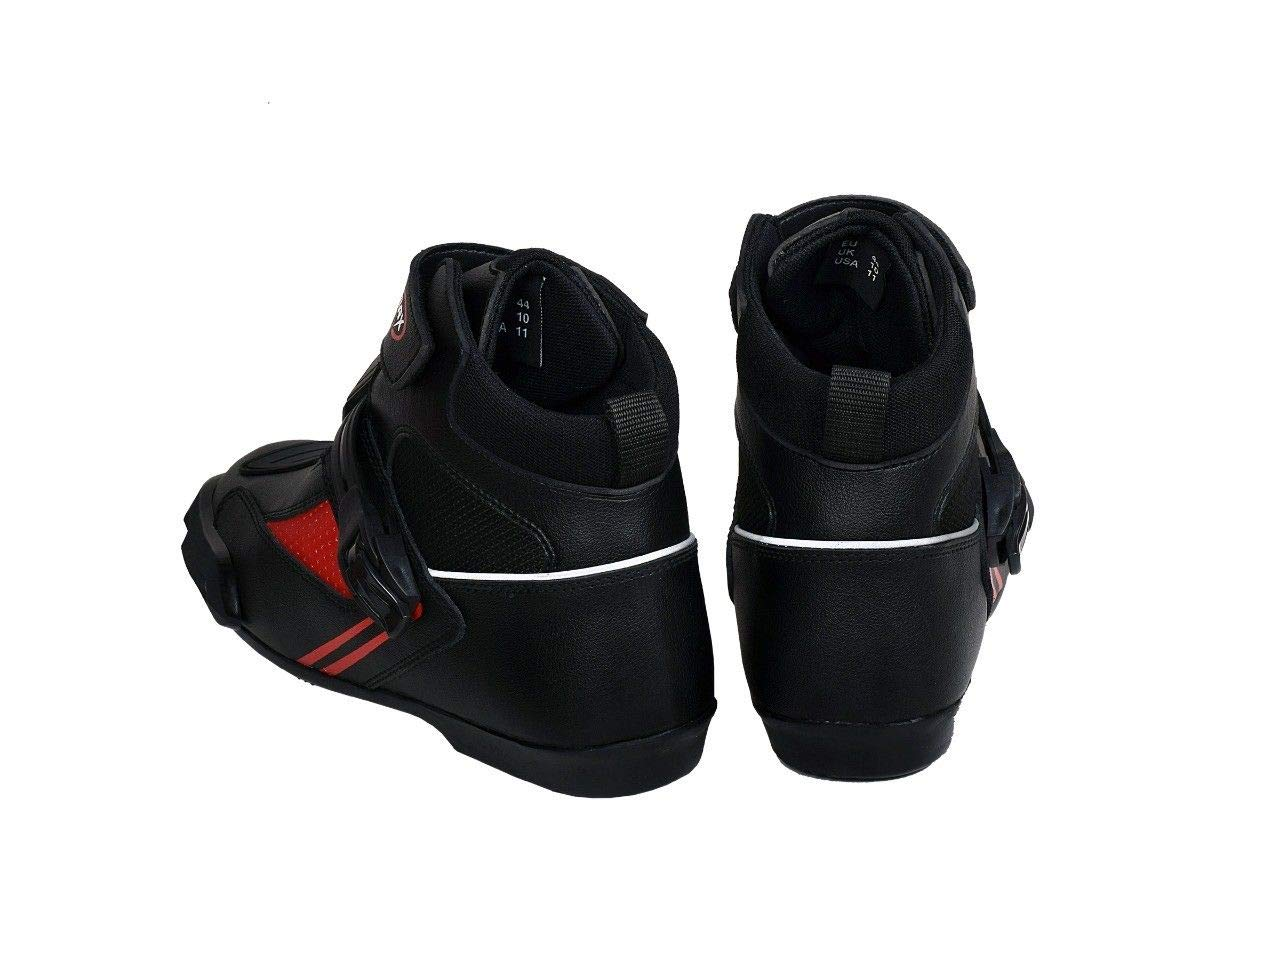 Max5 Touring Bike Road Racing Sports Motorbike Boots New Shorts Motorcycle Shoes Red, 11 UK